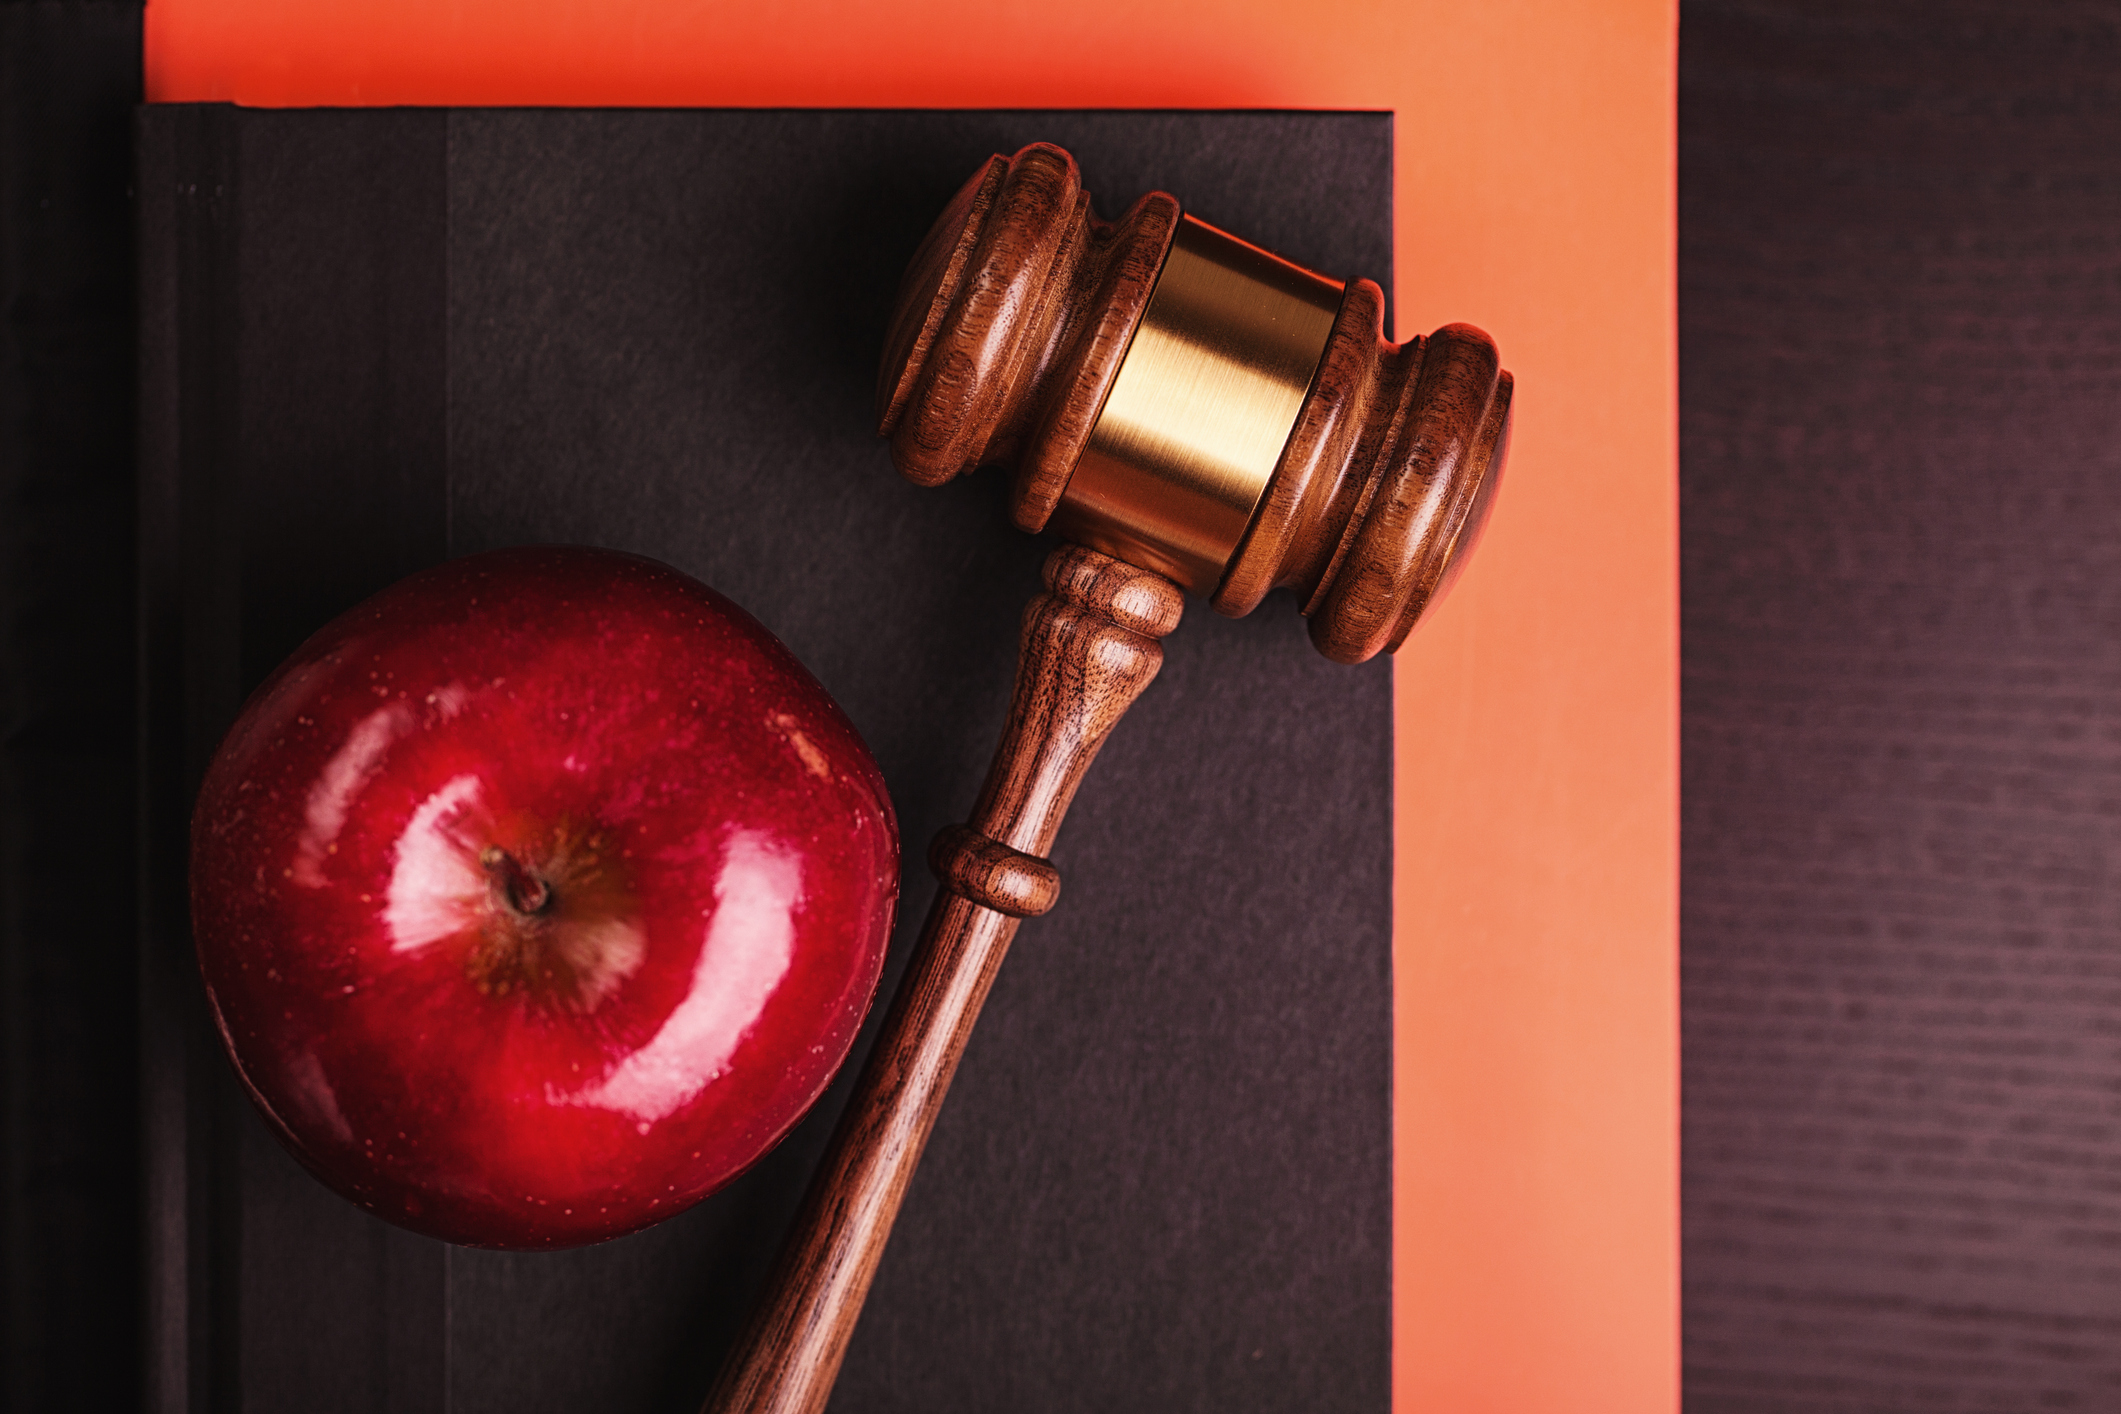 Law and Policy - Federal and state level policies that support and enhance wasted food prevention efforts